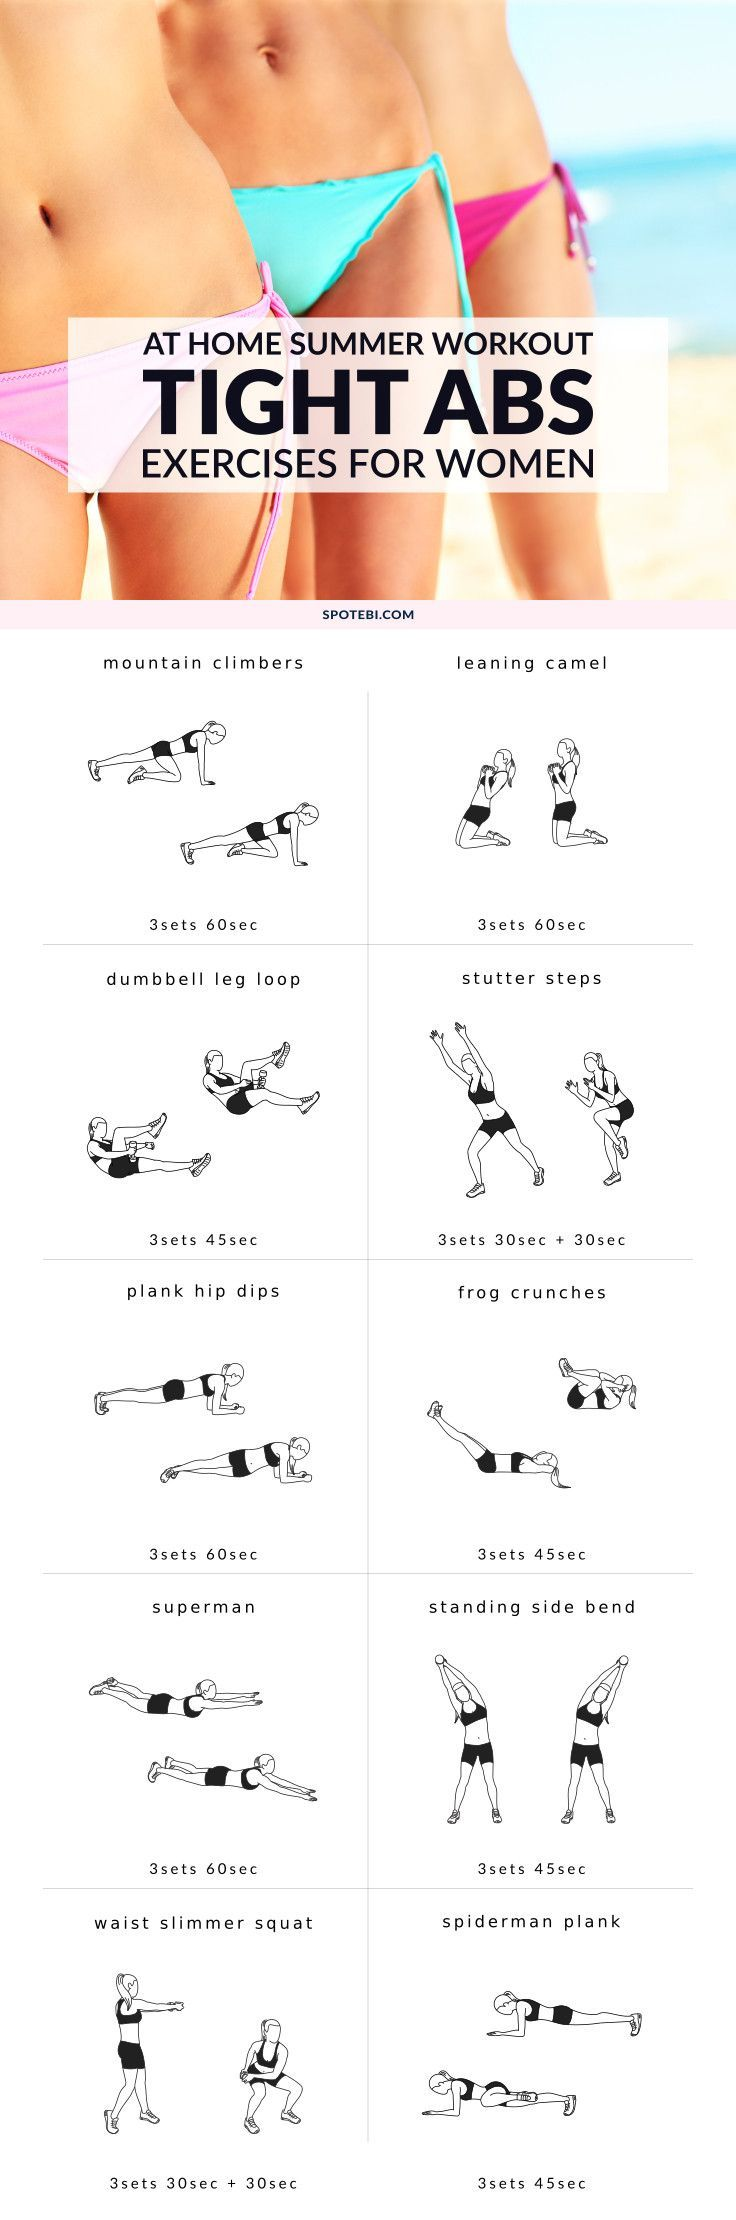 Get a flat, toned stomach and snap into shape with this bikini body tight tummy workout. 10 core-strengthening moves to help you sculpt sexy curves and say goodbye to shapewear for good. Slim, strong tummy here we come! https://www.spotebi.com/workout-routines/bikini-body-tight-tummy-workout/